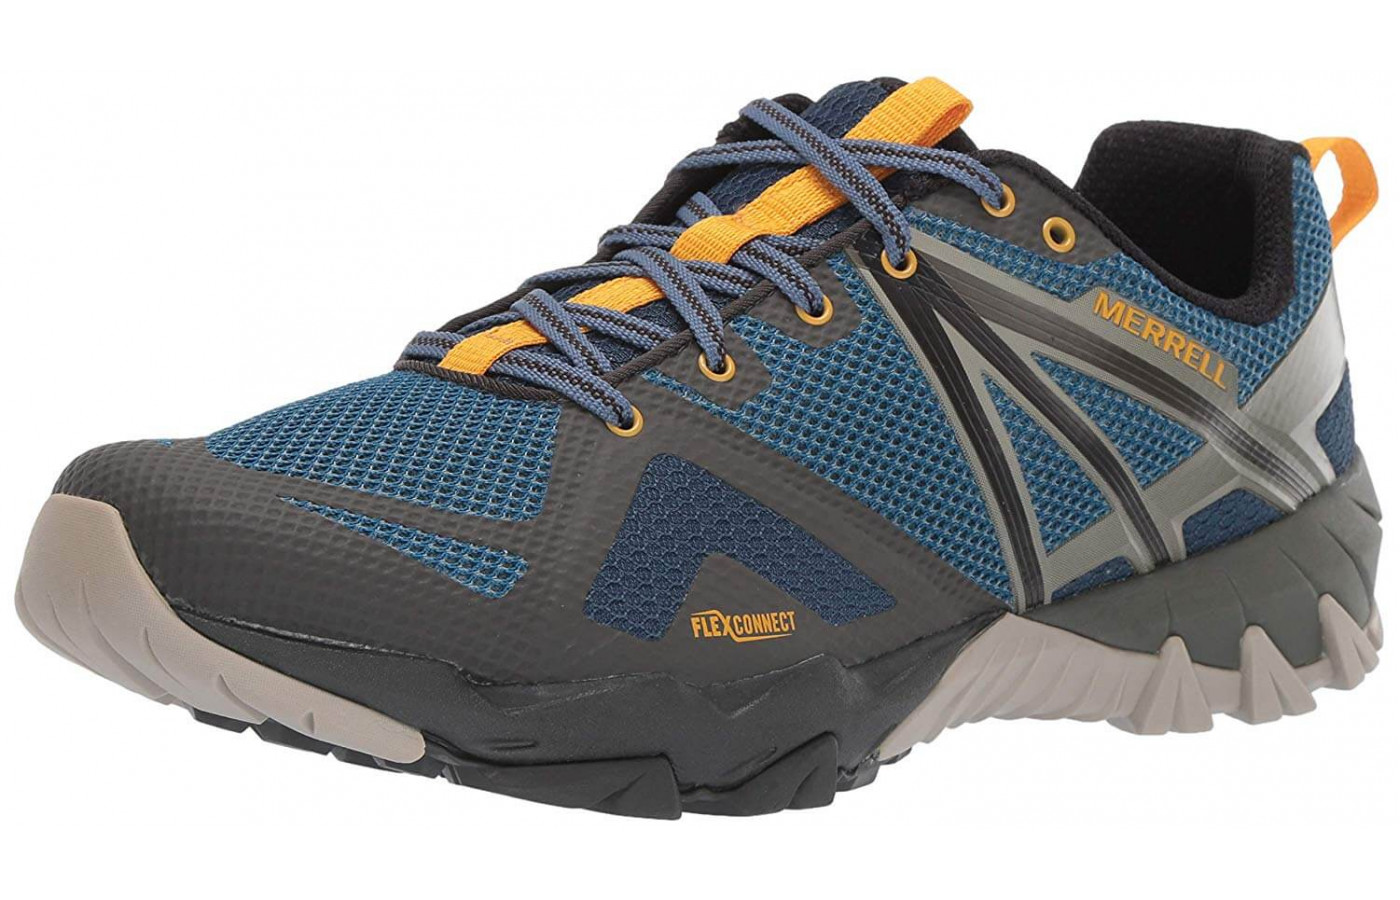 Merrell MQM Ace front side angle